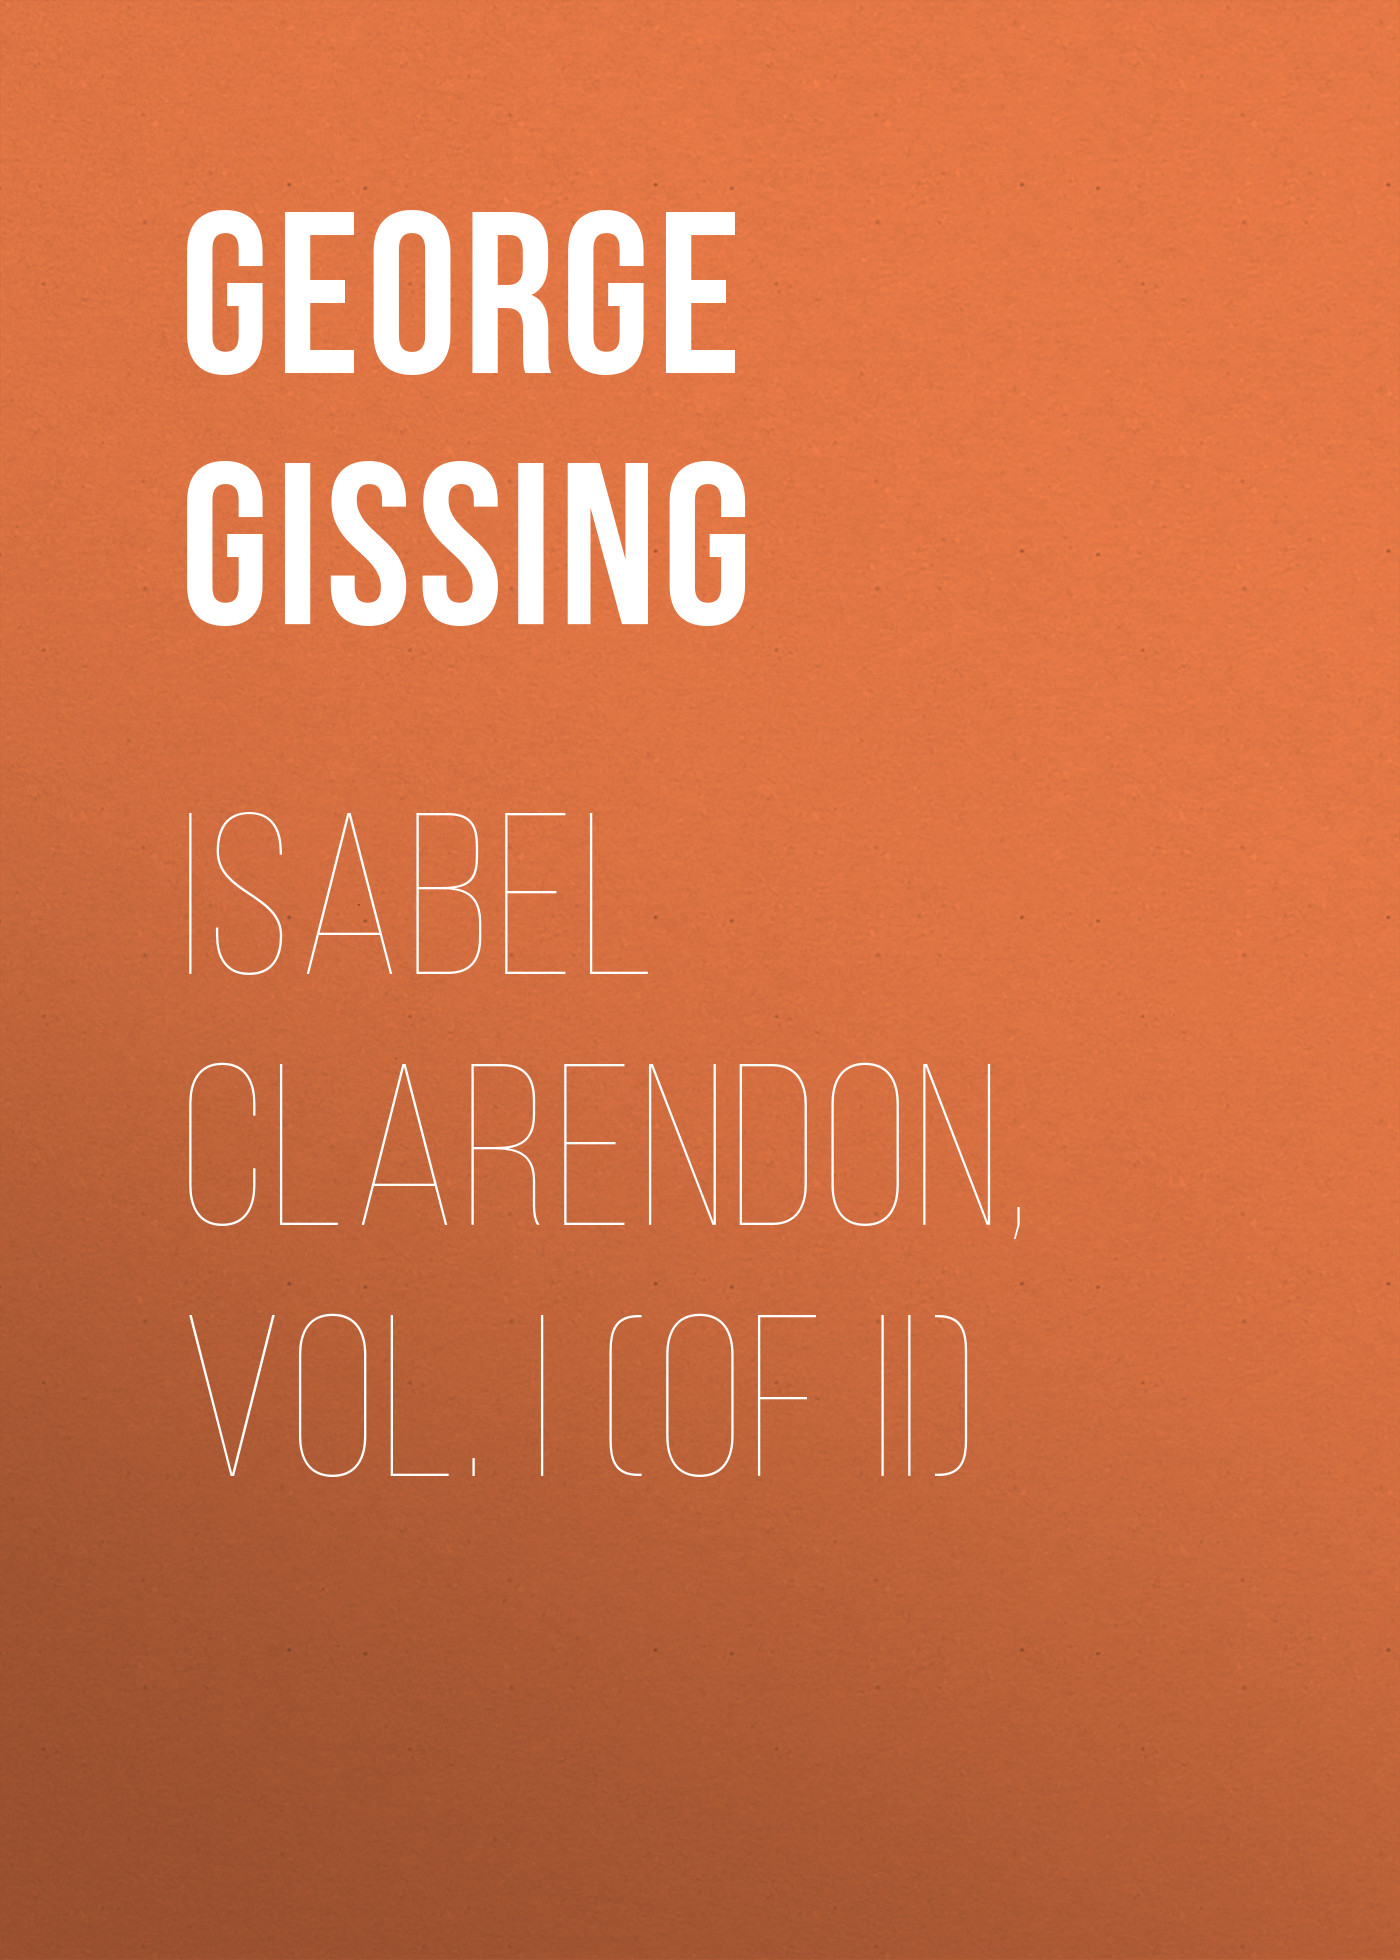 George Gissing Isabel Clarendon, Vol. I (of II) фрэнсис бэкон the works of francis bacon volume 1 german edition